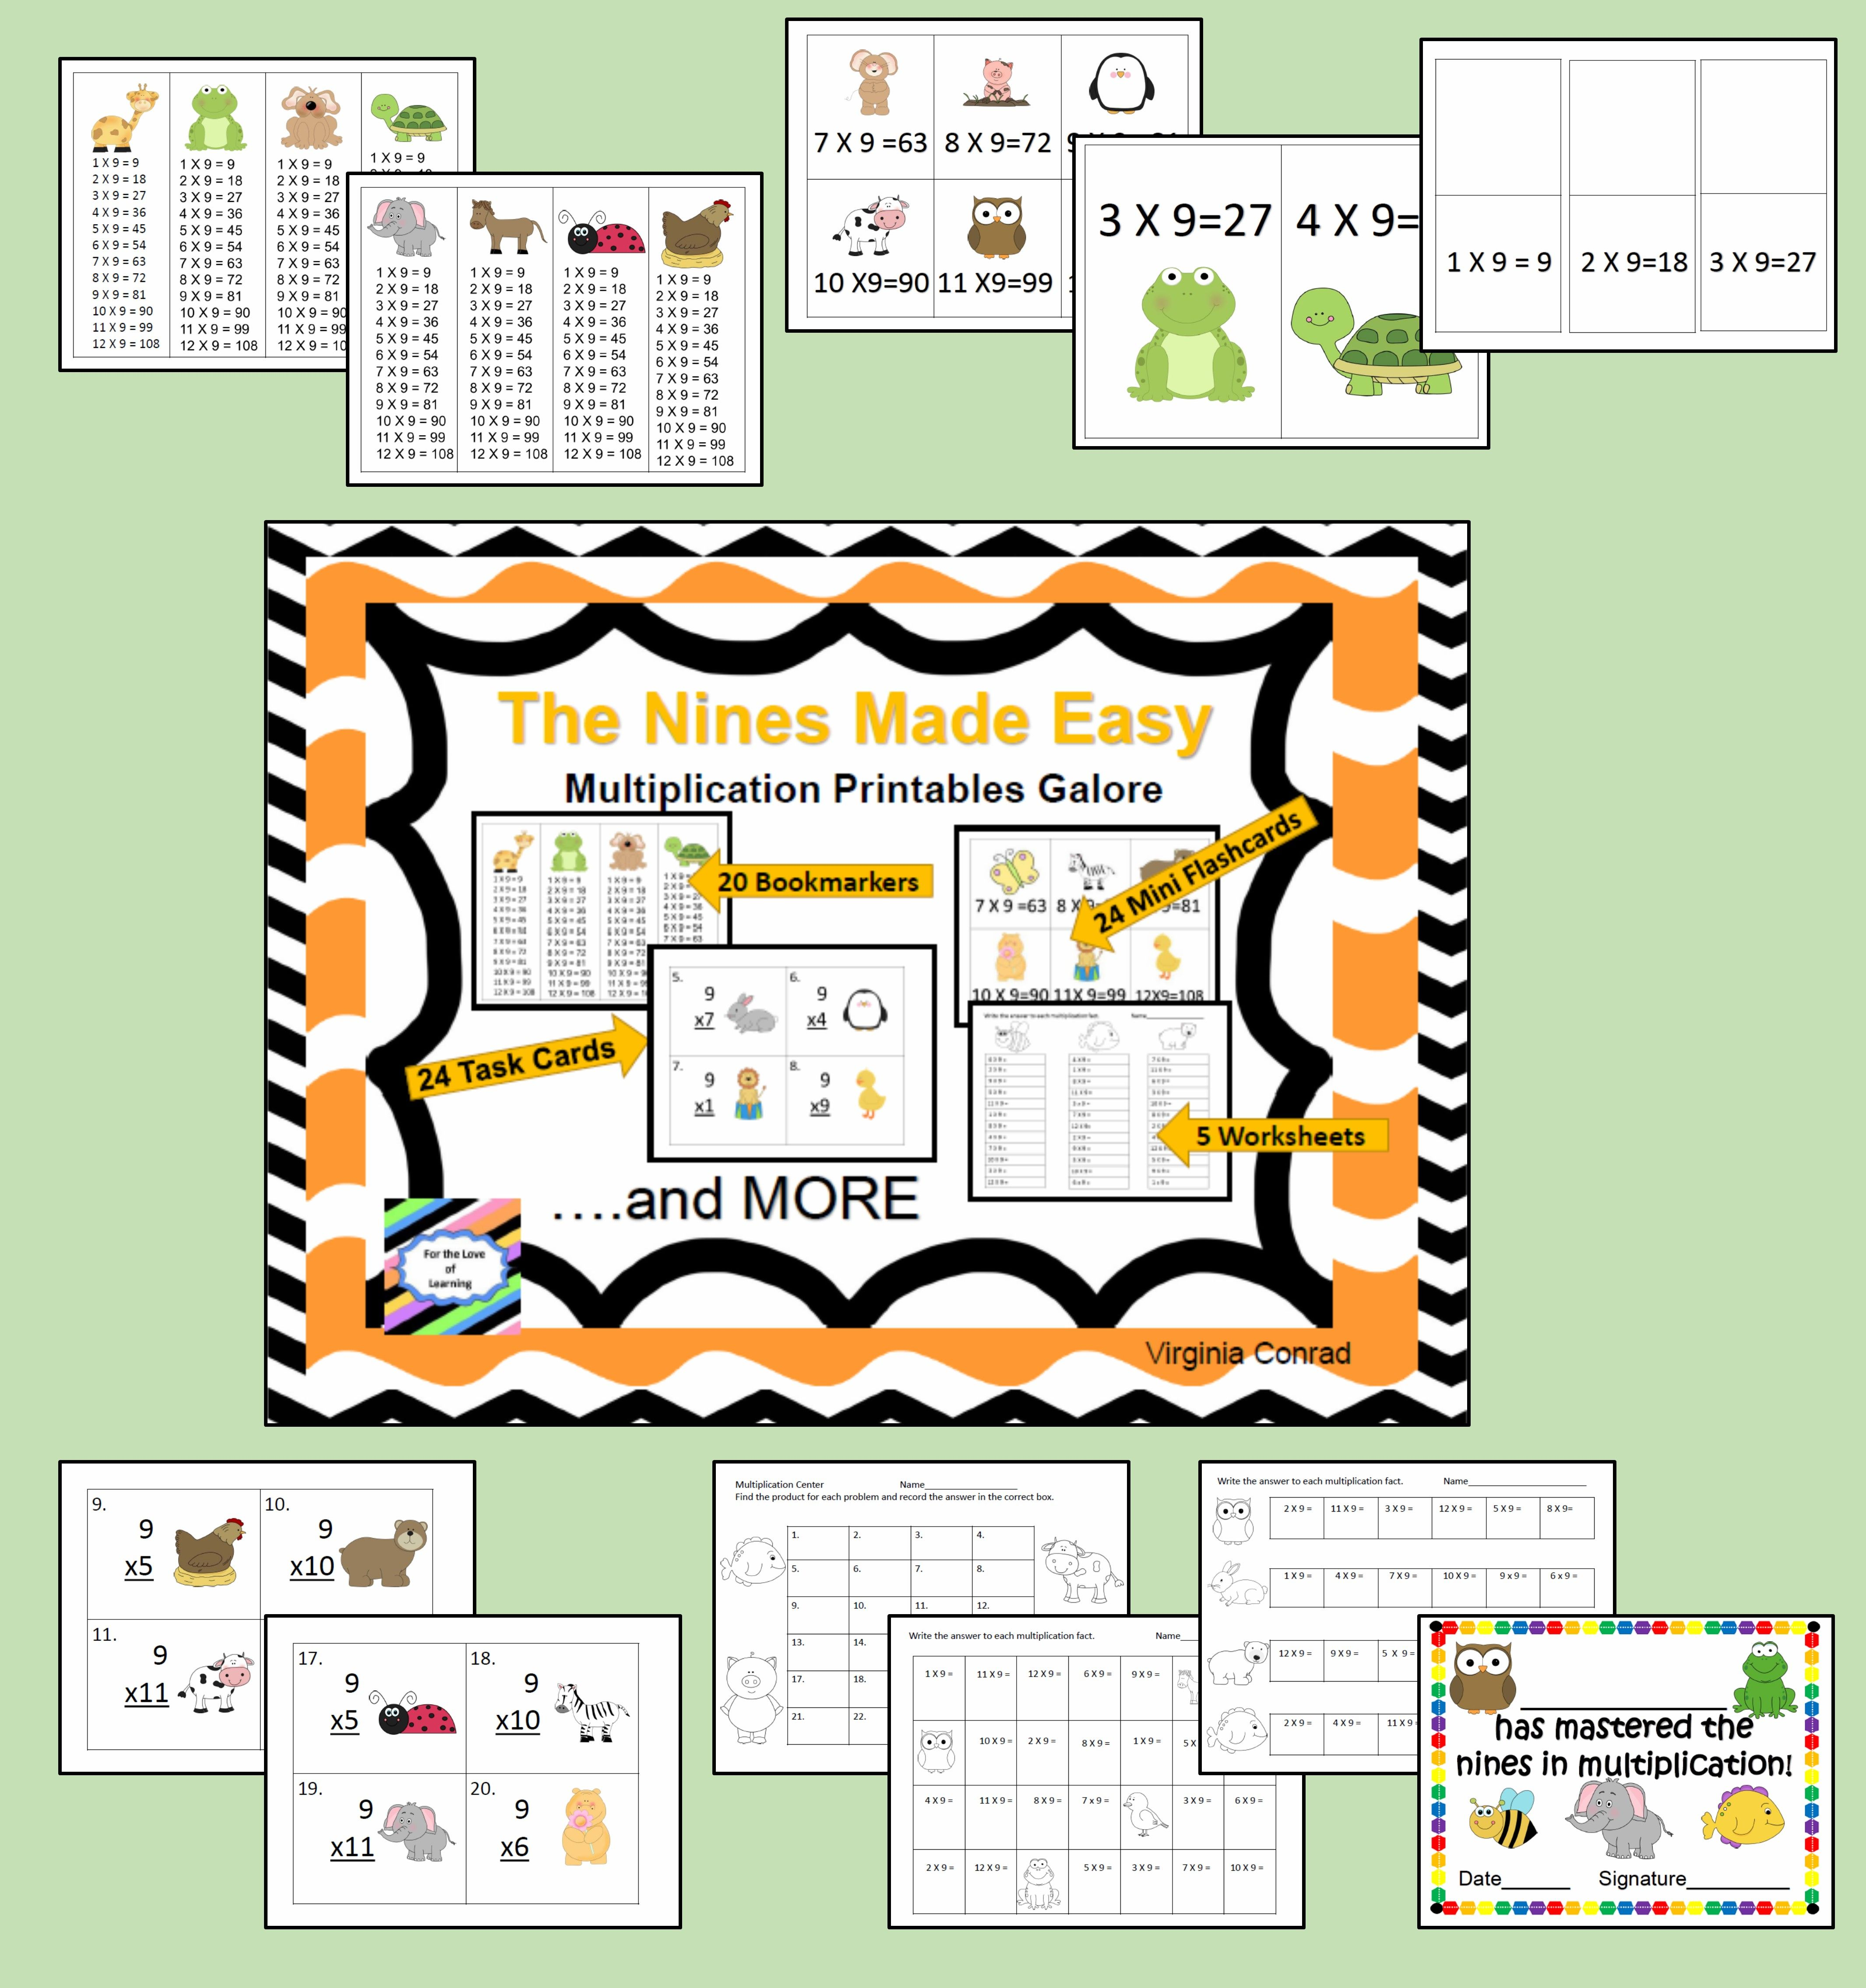 Nines Made Easy Multiplication Printables Galore